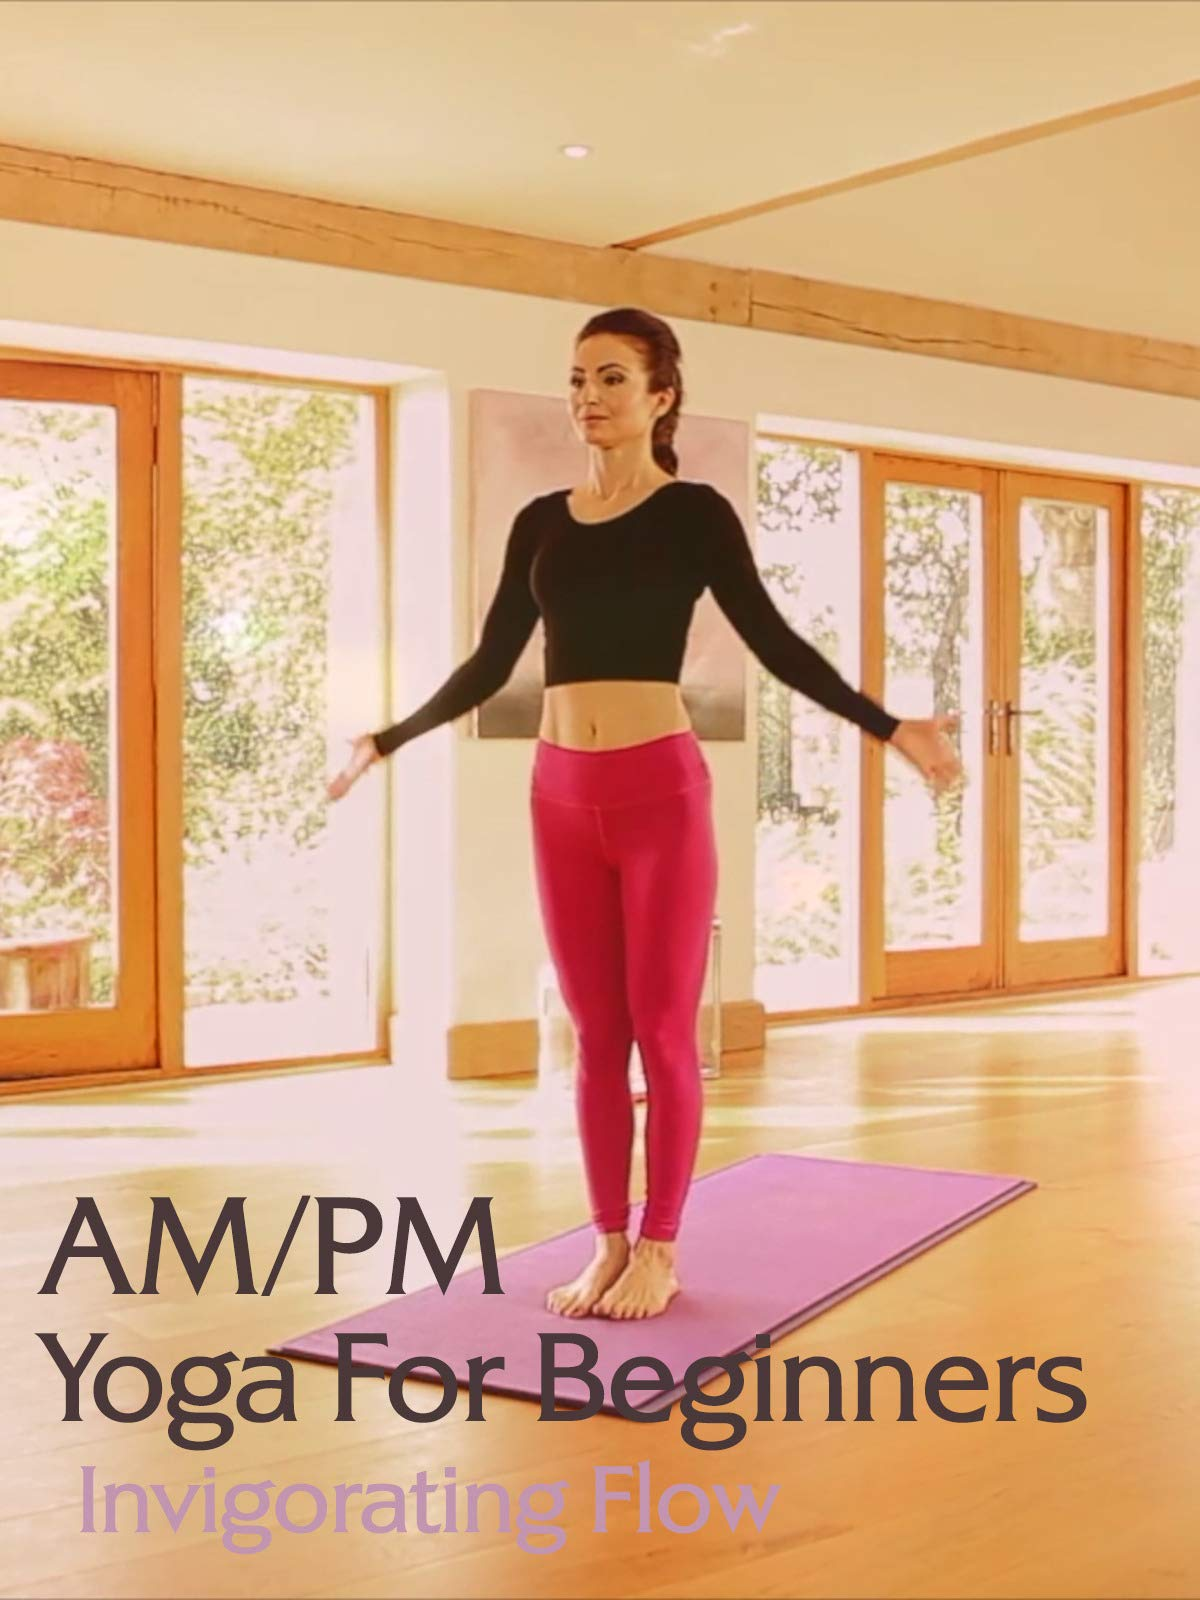 Amazon.com: Watch AM/PM Yoga for Beginners: Invigorating ...